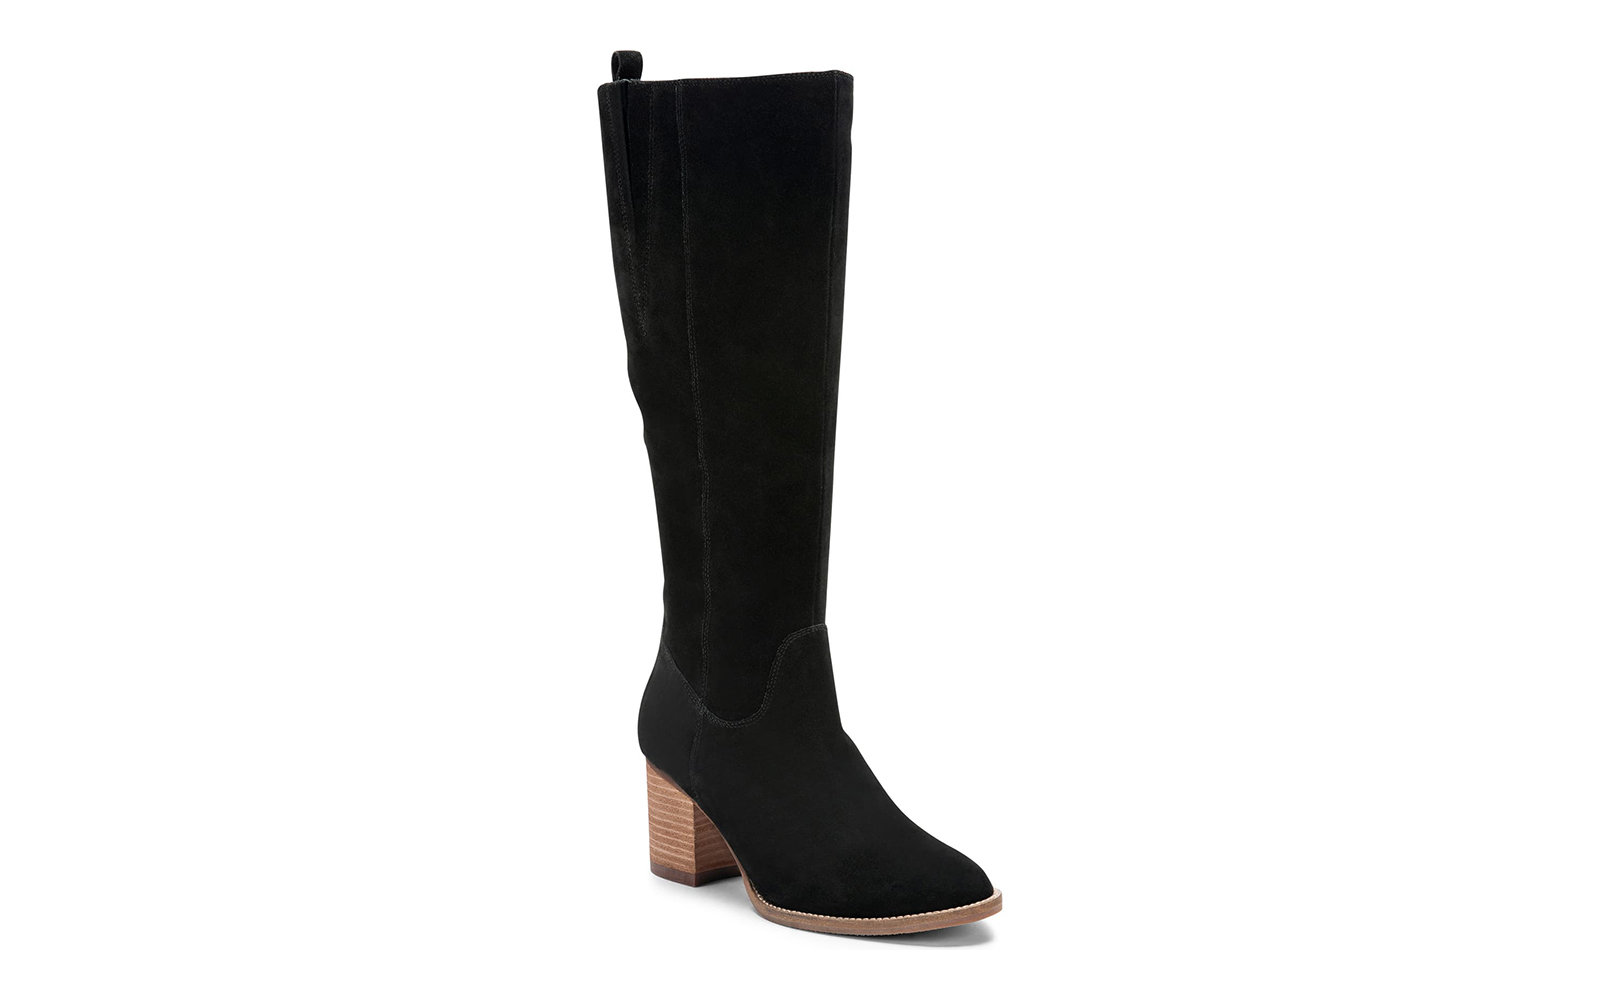 Nikki Waterproof Knee High Waterproof Boot